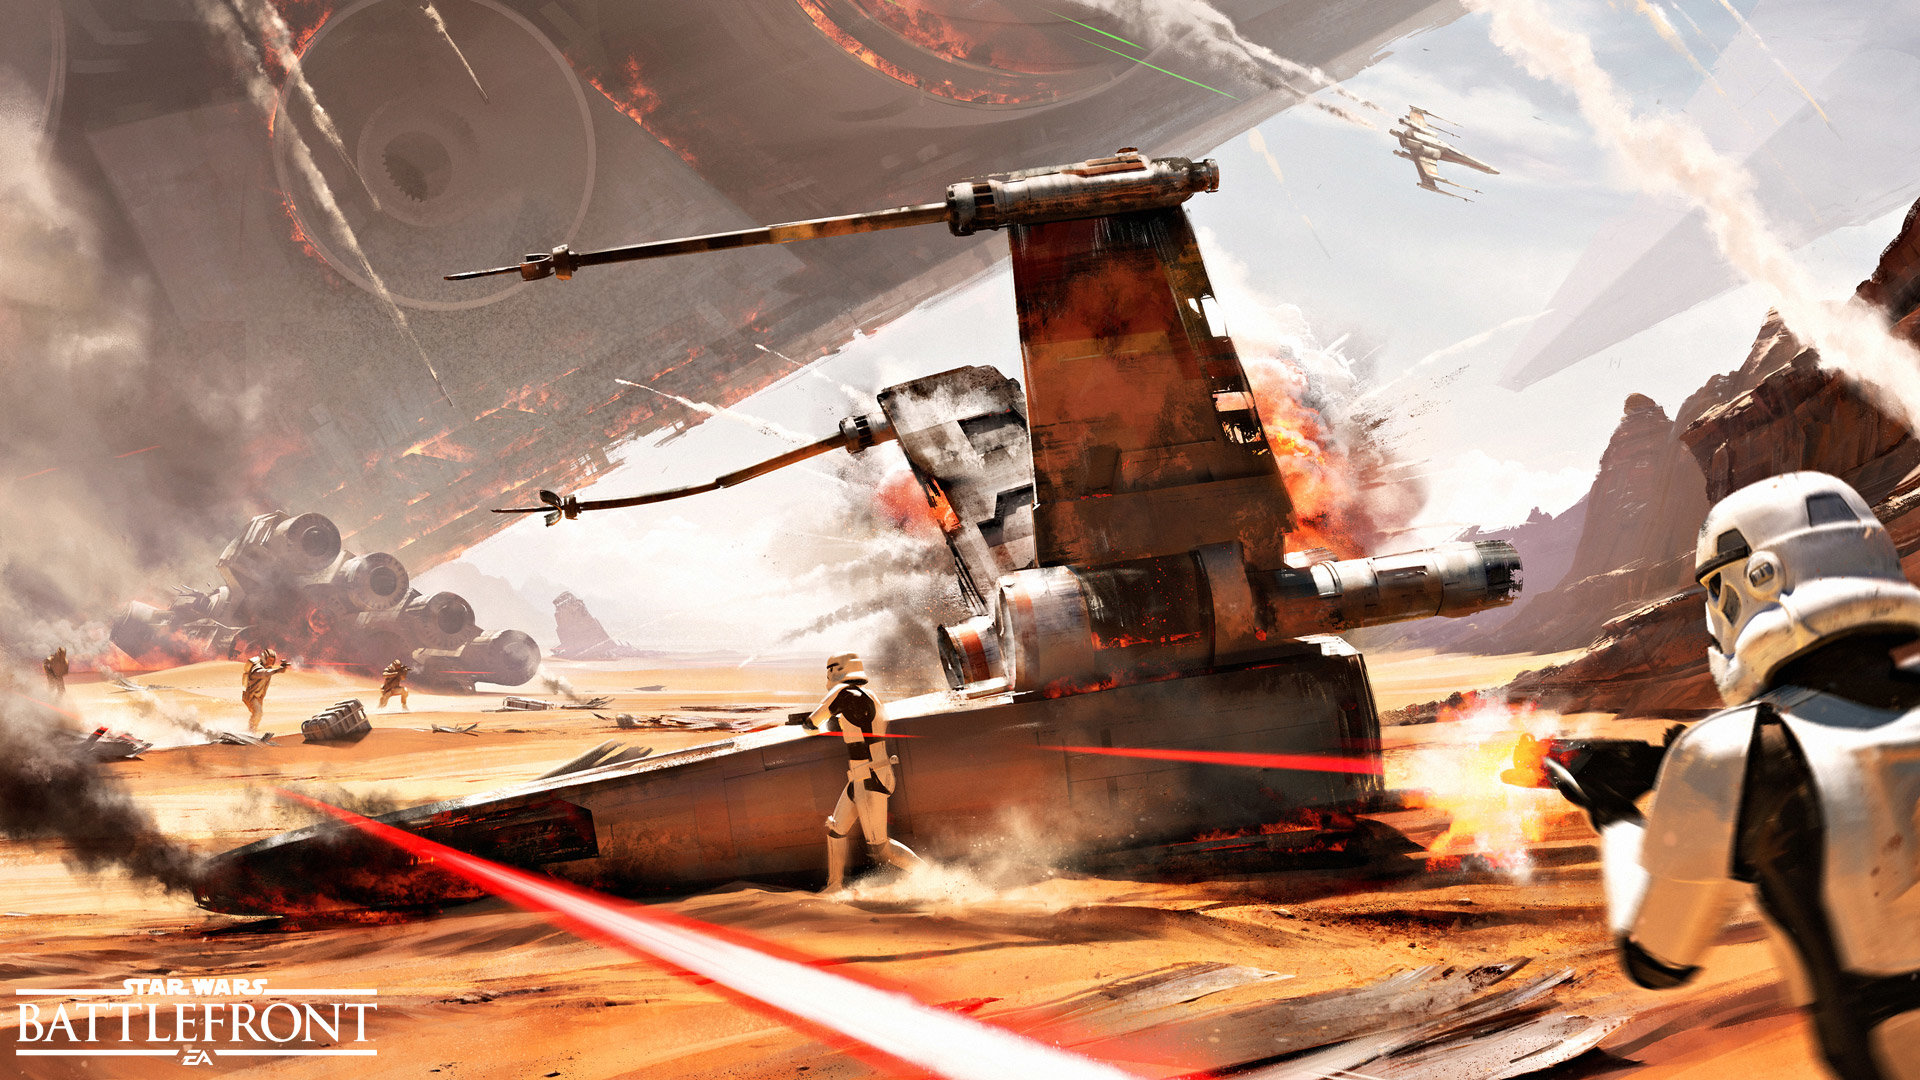 Awesome Star Wars Battlefront Free Wallpaper Id162458 For 1080p Desktop